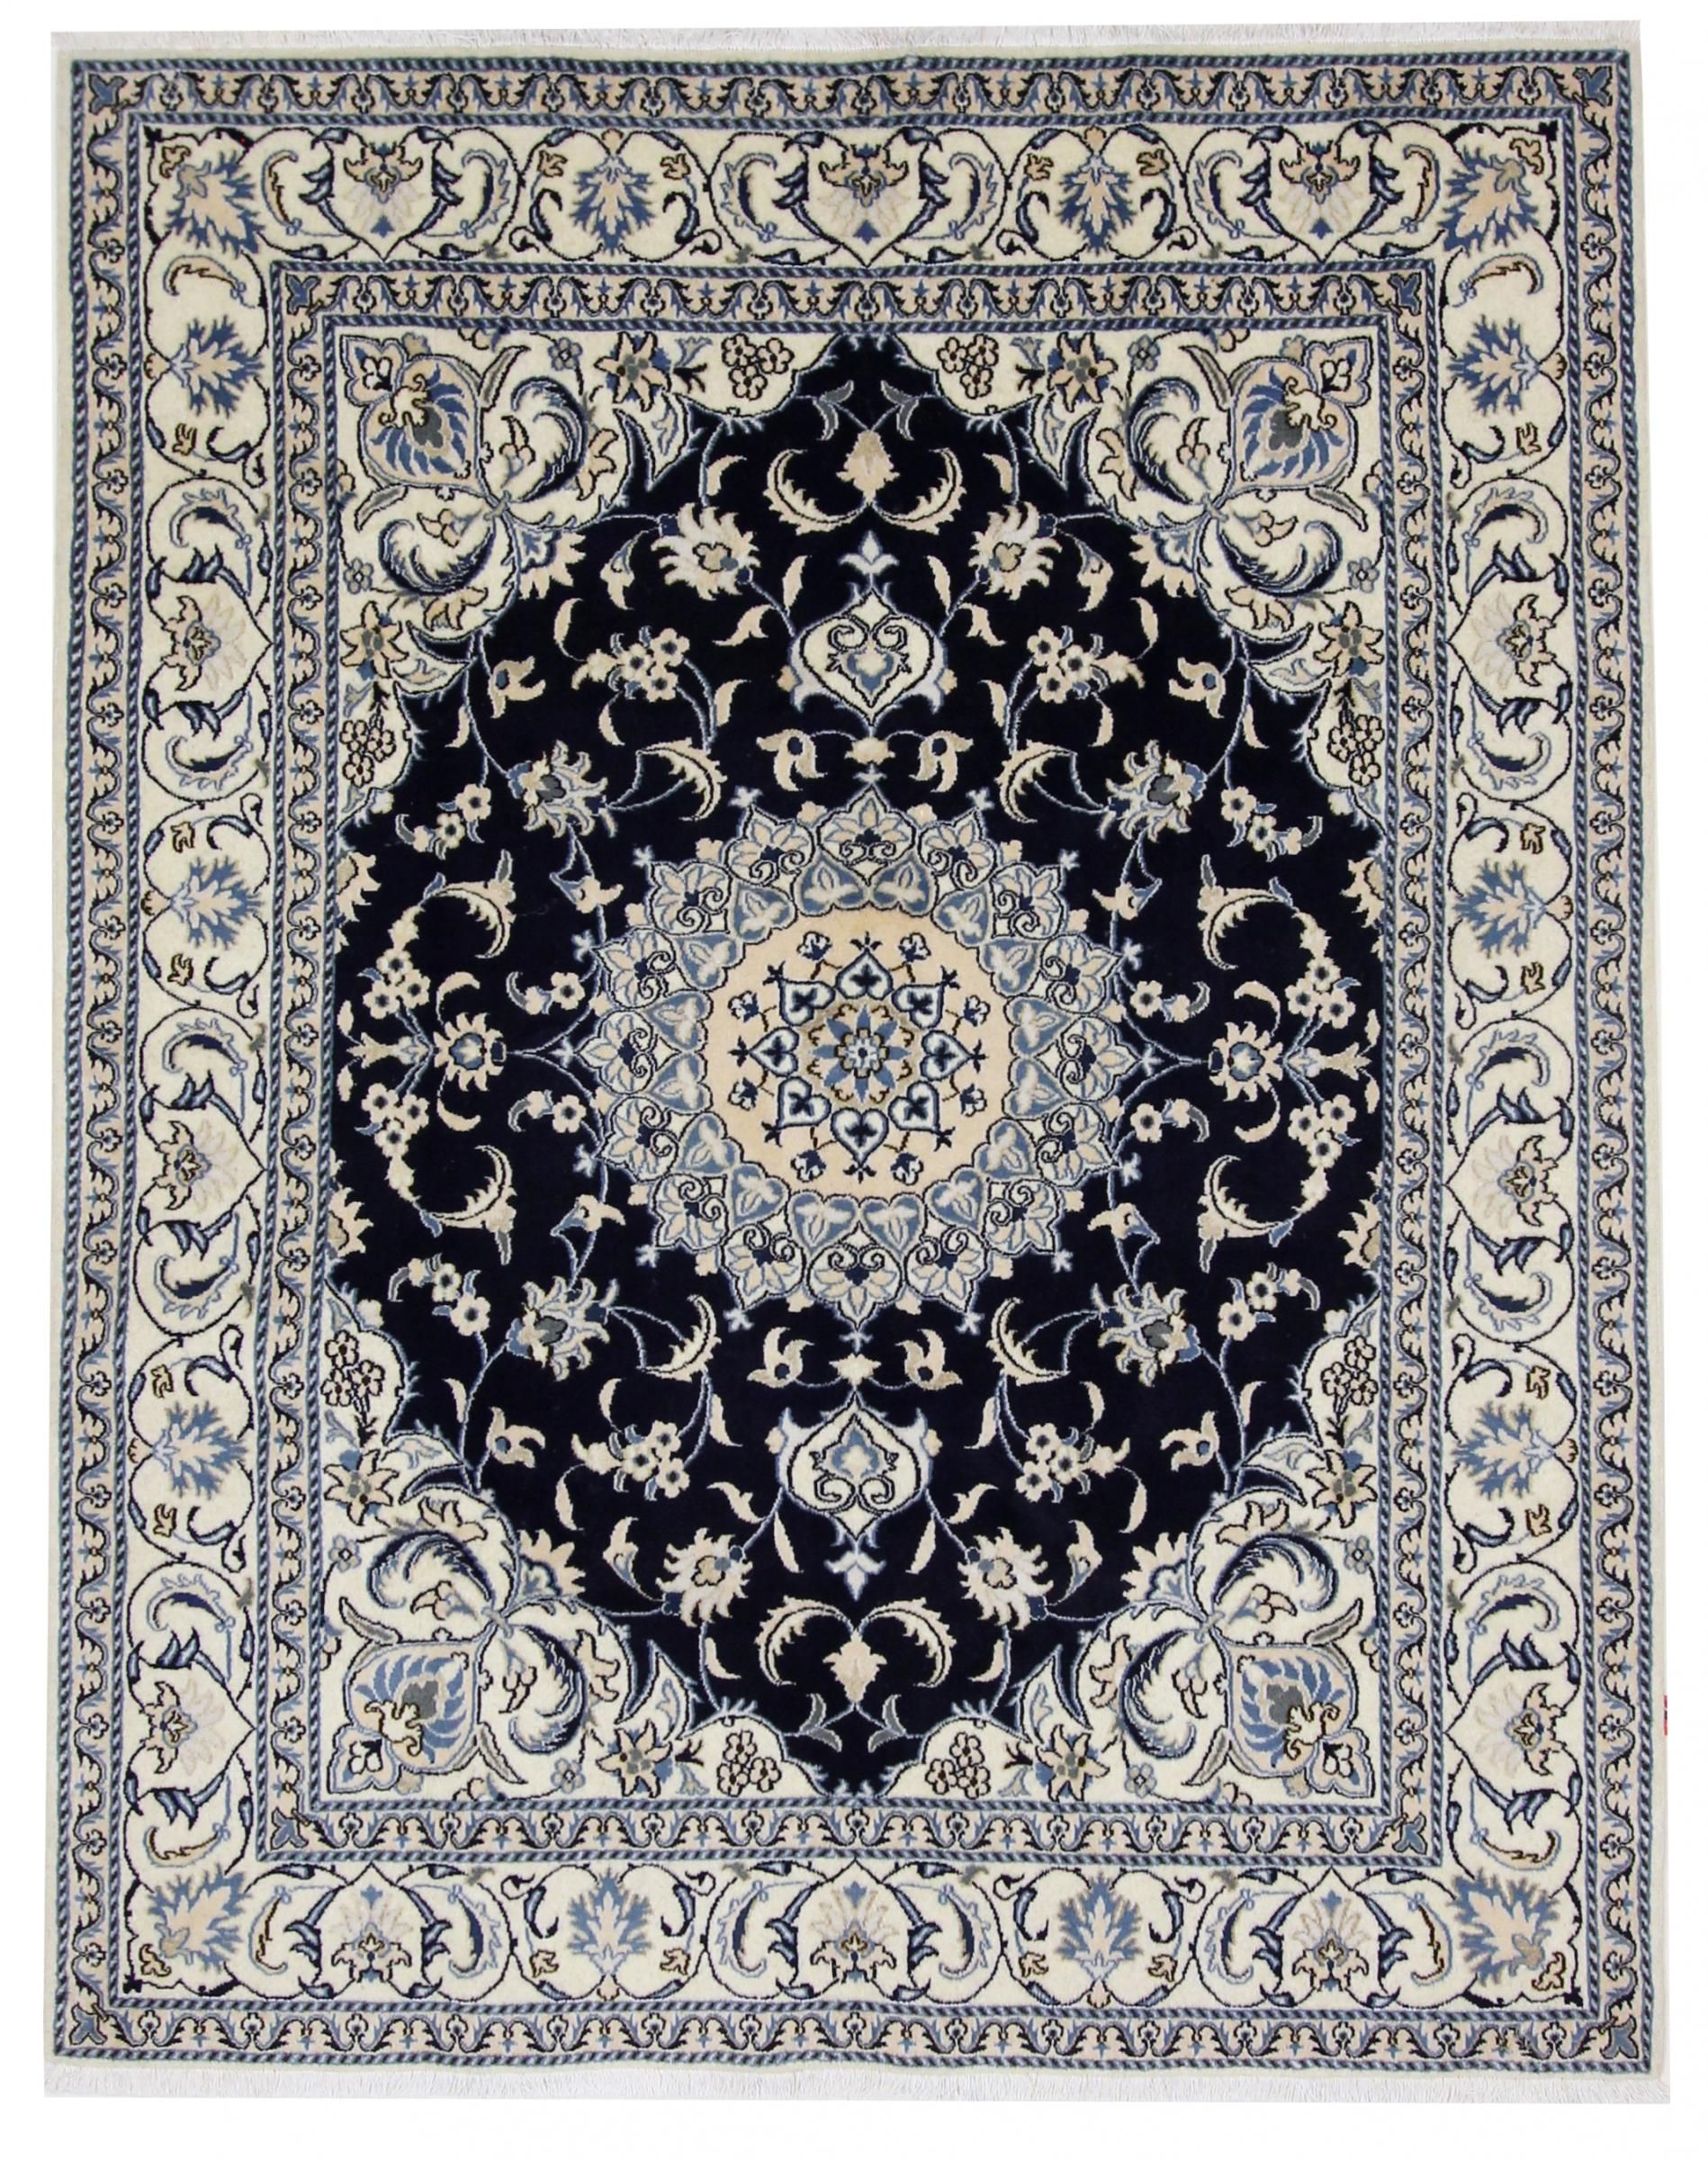 Persische Teppiche Seide Nain 250x197 In 2019 New Carpets And Rugs Rugs On Carpet Rugs